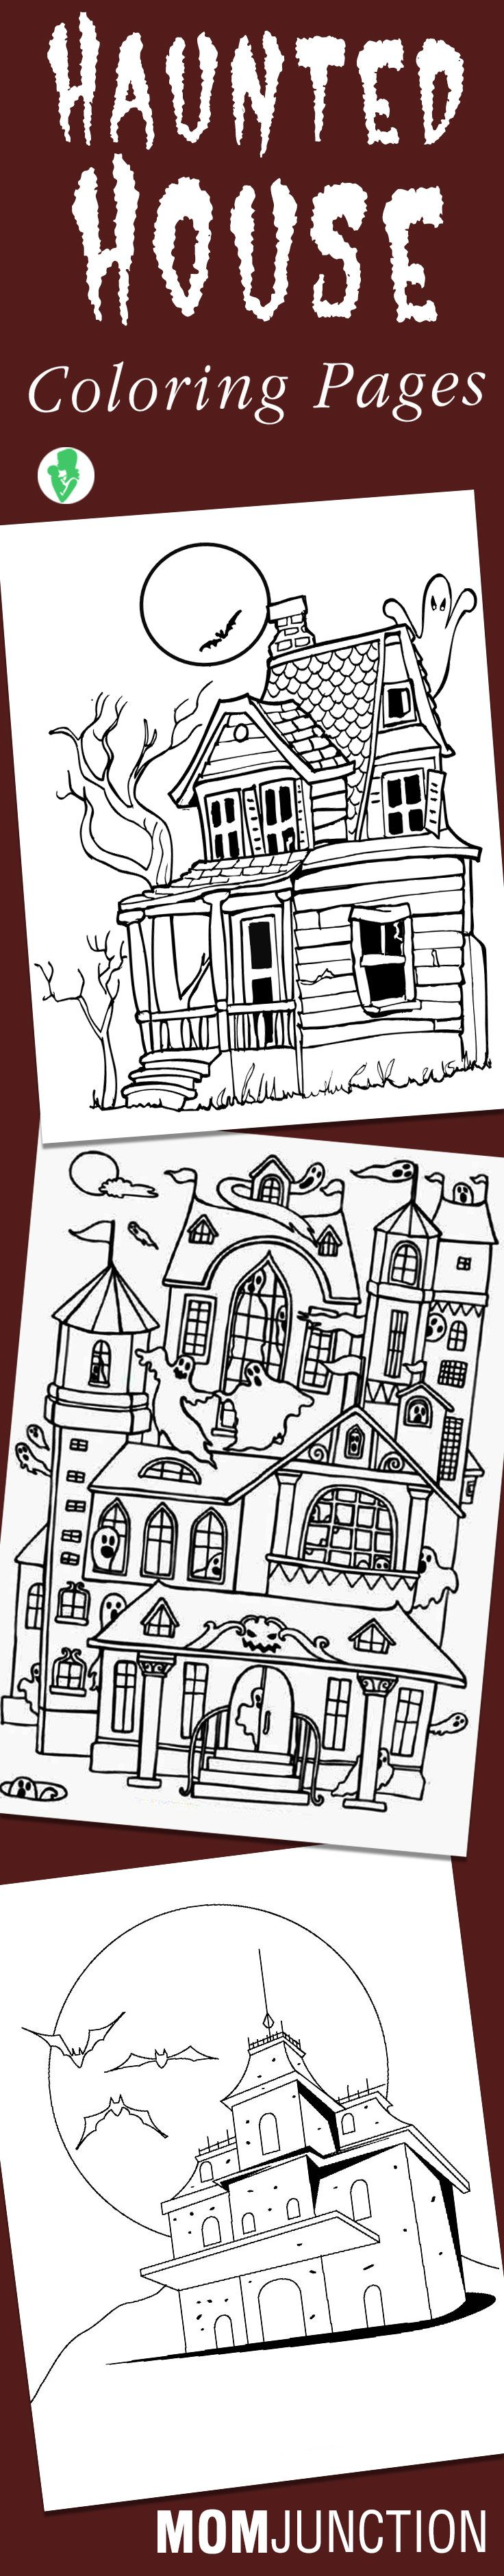 Princess house coloring pages - Top 10 Haunted House Coloring Pages For Your Little Ones These Coloring Pages Can Be